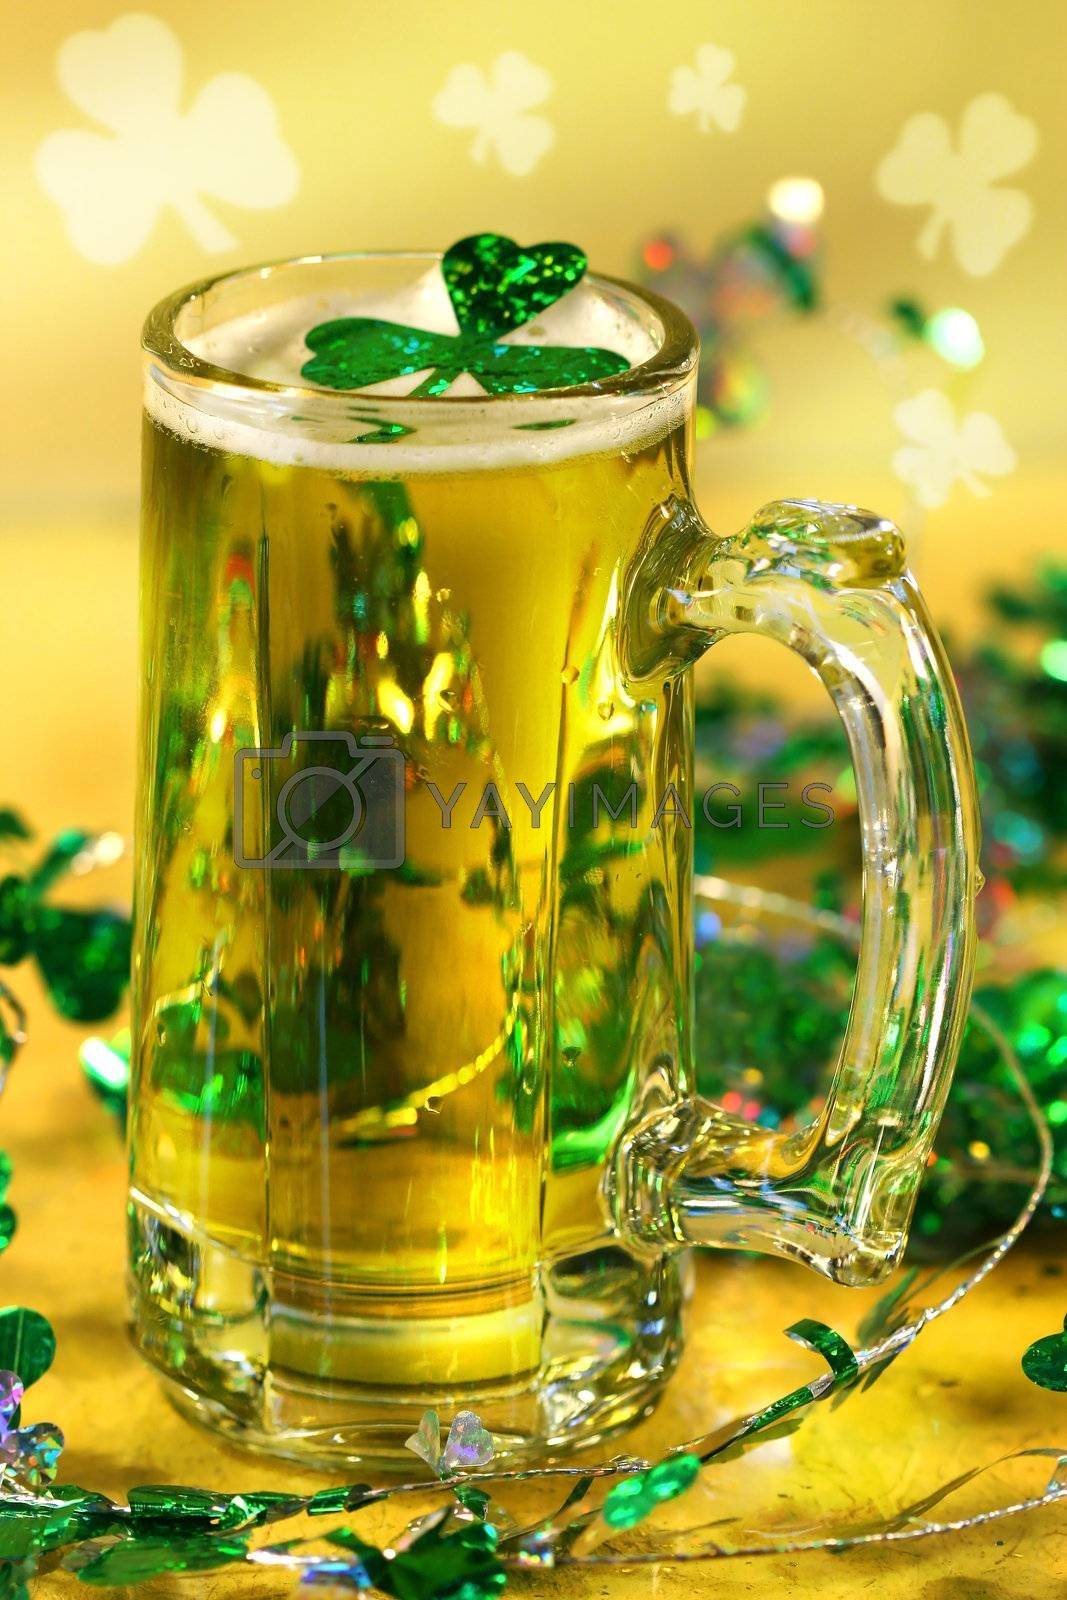 Mug of green beer for St Patick's Day festivities